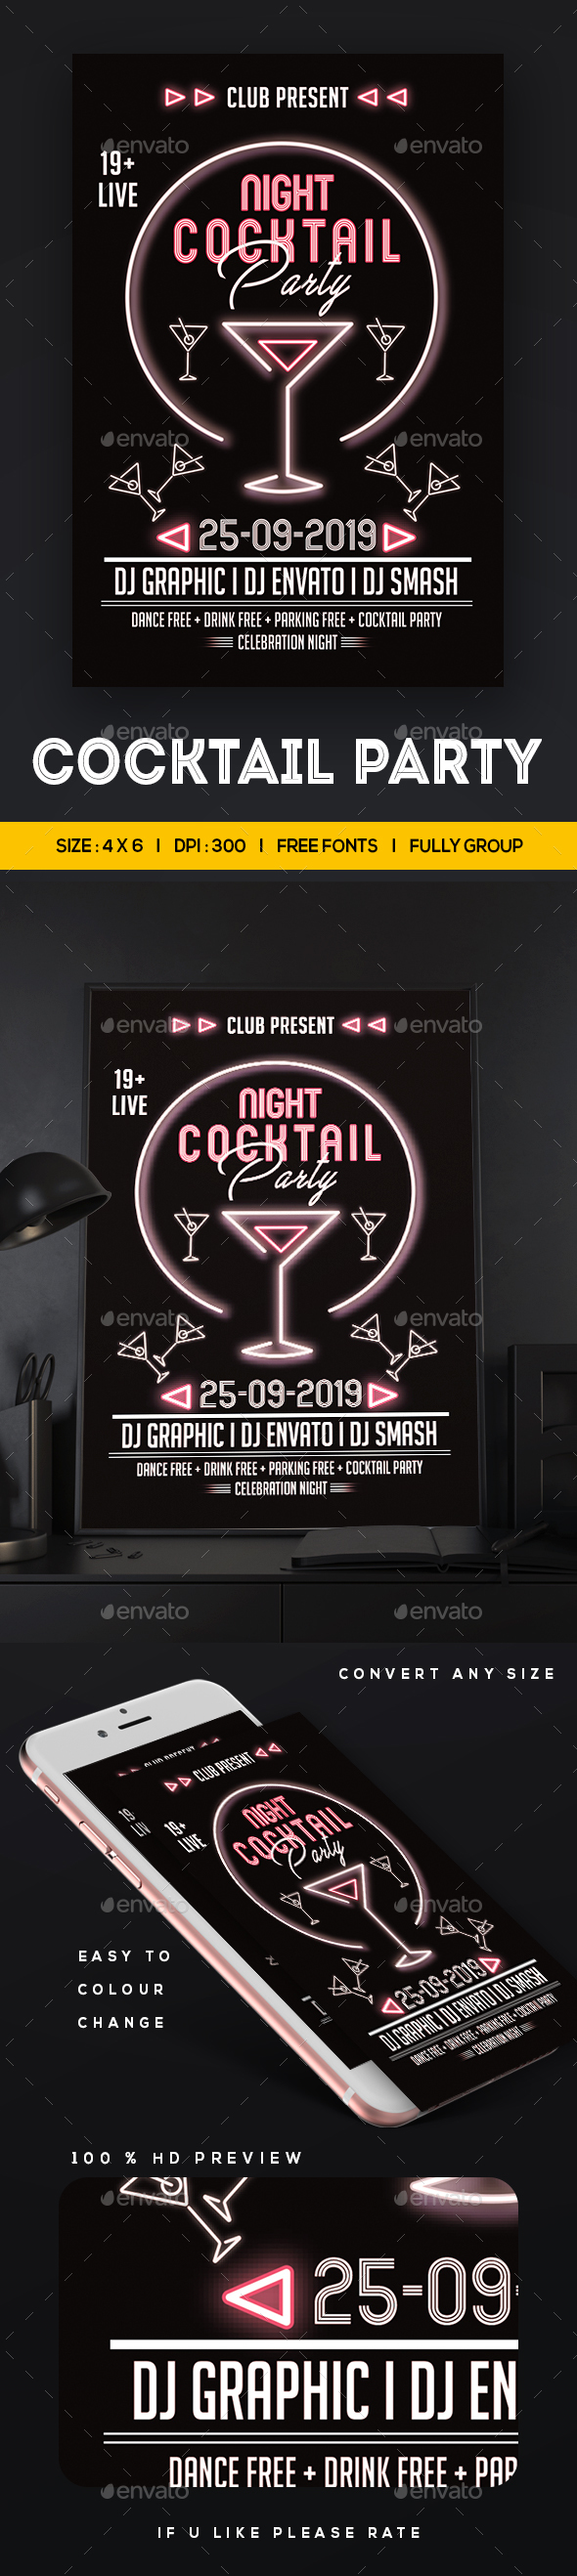 Cocktail Party Flyer - Clubs & Parties Events